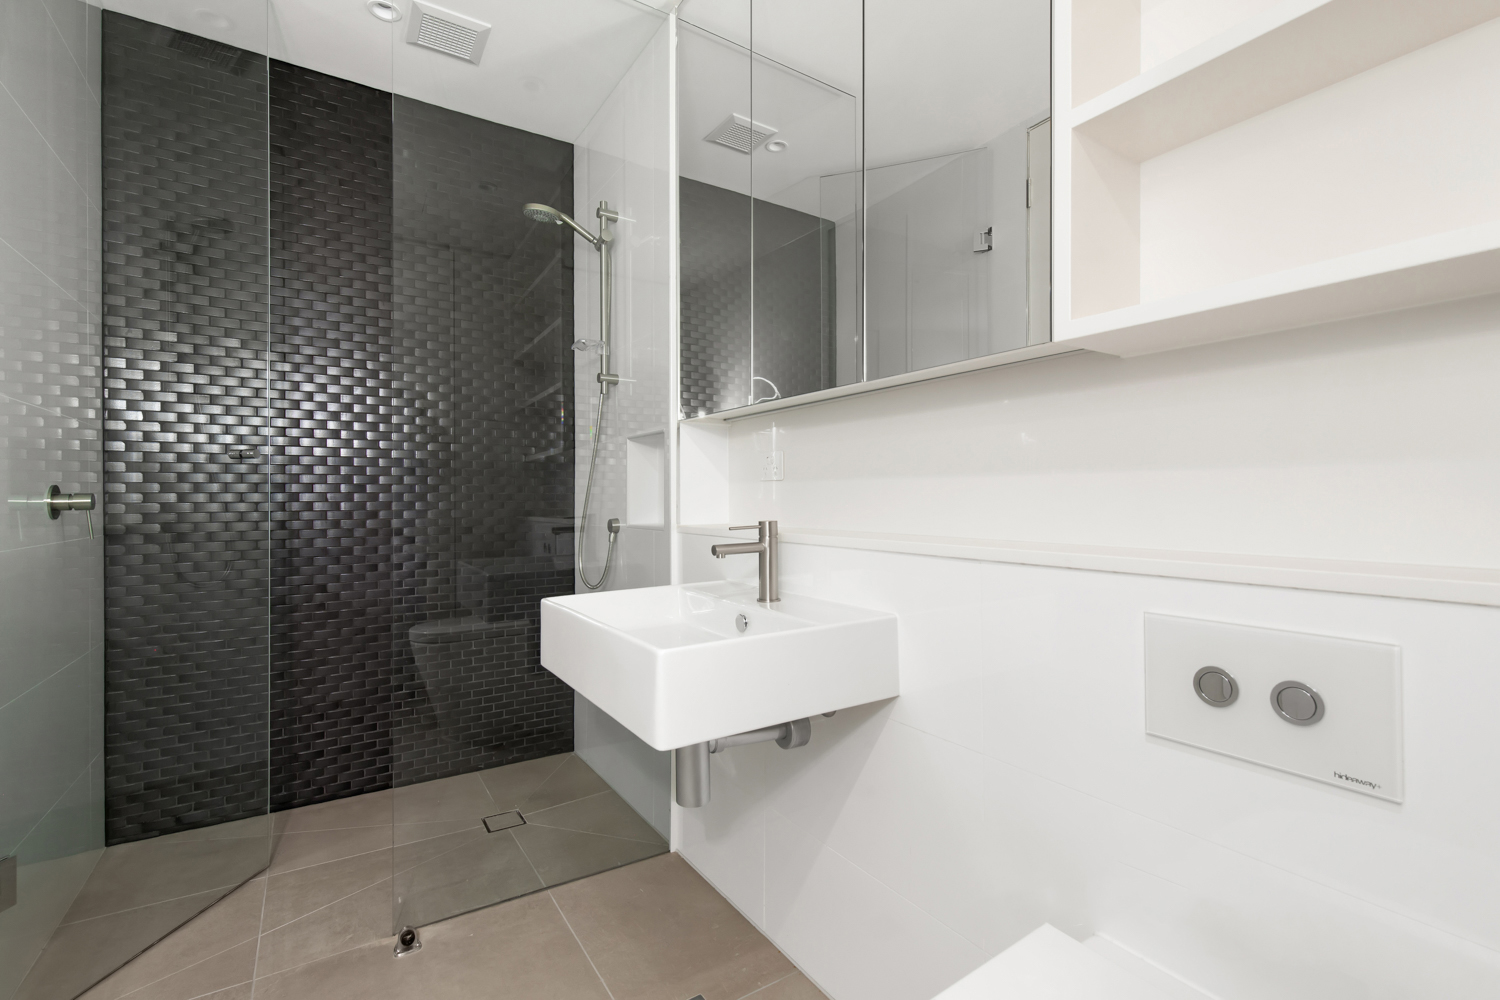 401-142-johnston-street-fitzroy-student-accommodation-Melbourne-Bathroom-Unilodgers